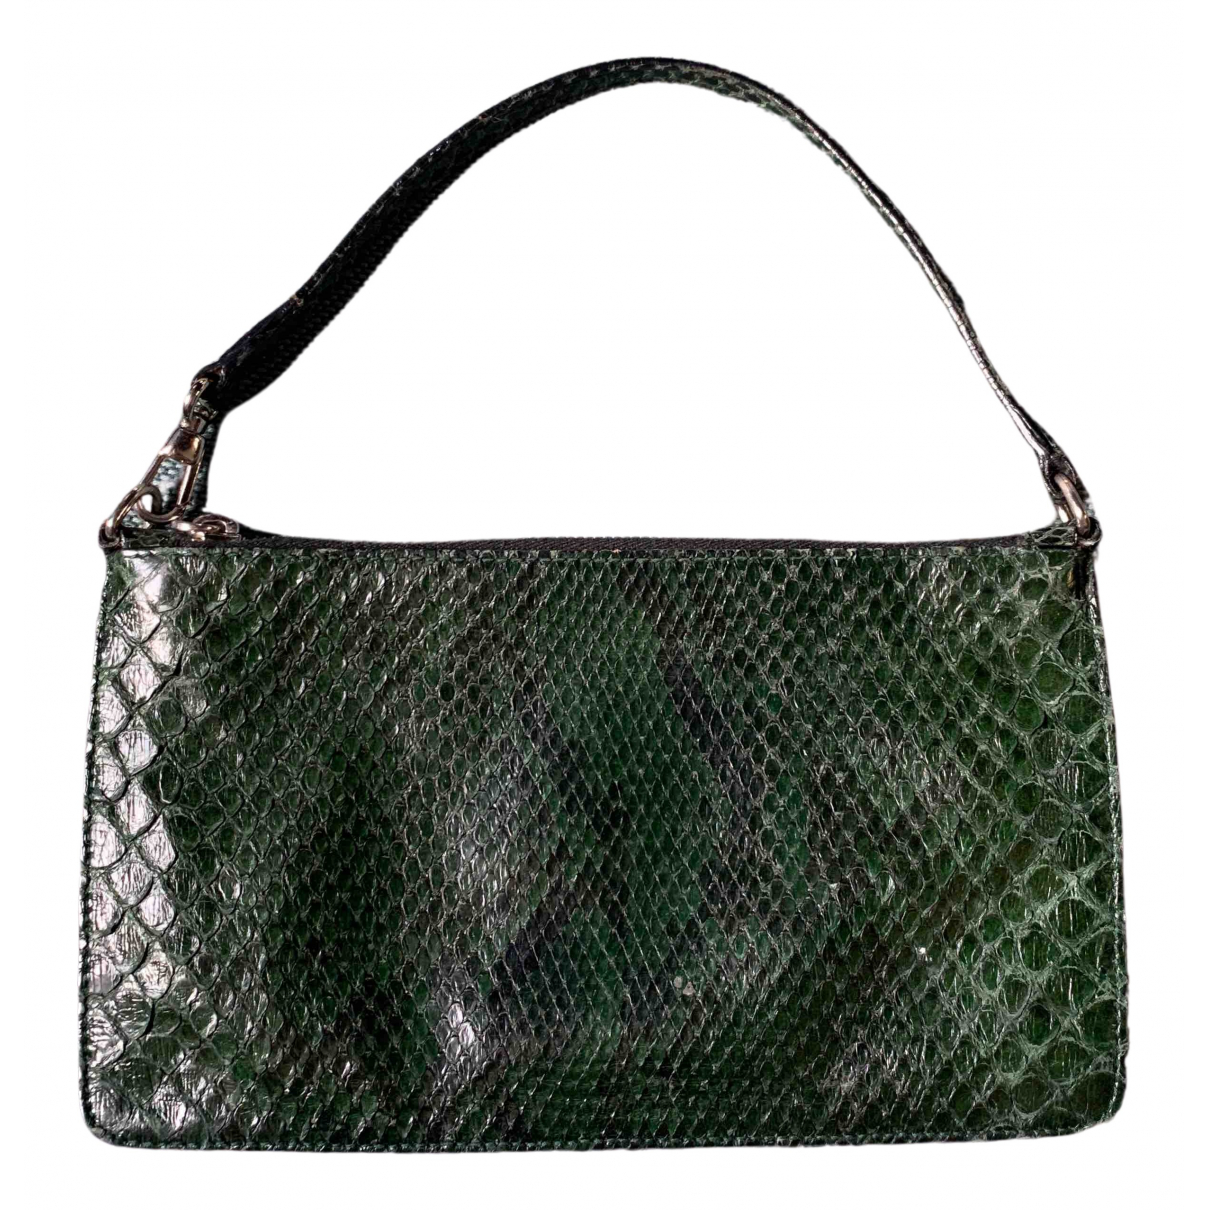 Alaïa \N Green Water snake Clutch bag for Women \N